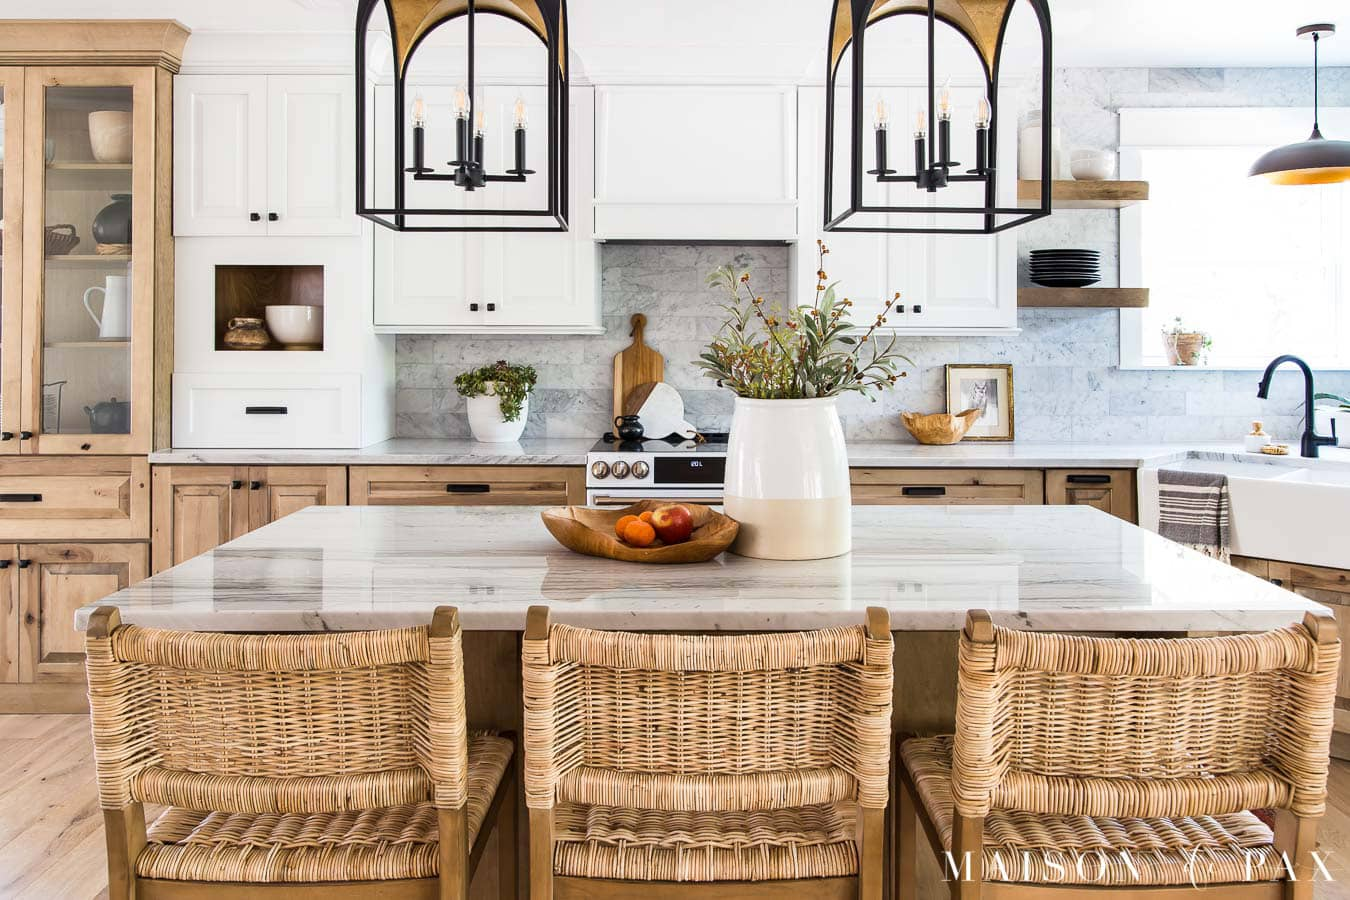 white and wood kitchen cabinets with quartzite counters